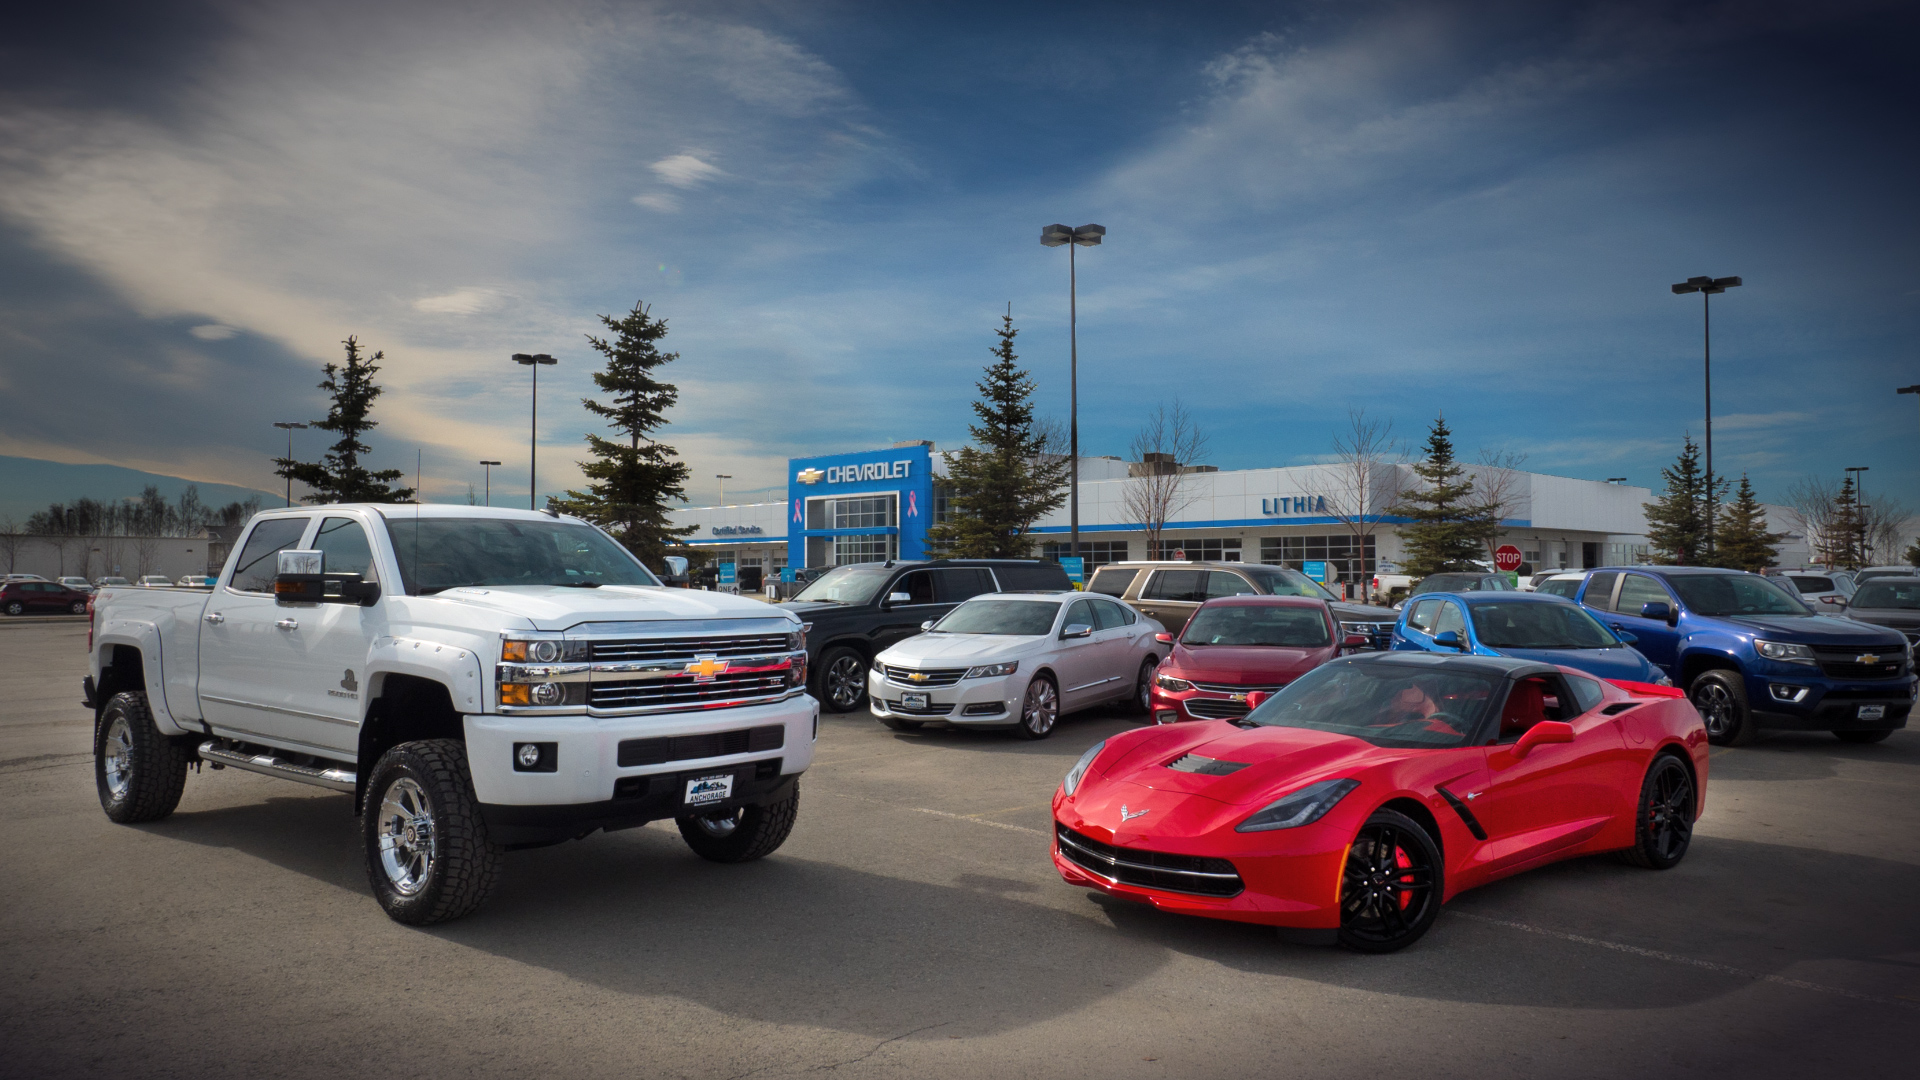 short chevrolet reviews test express awd s anchorage chevy photo take original road